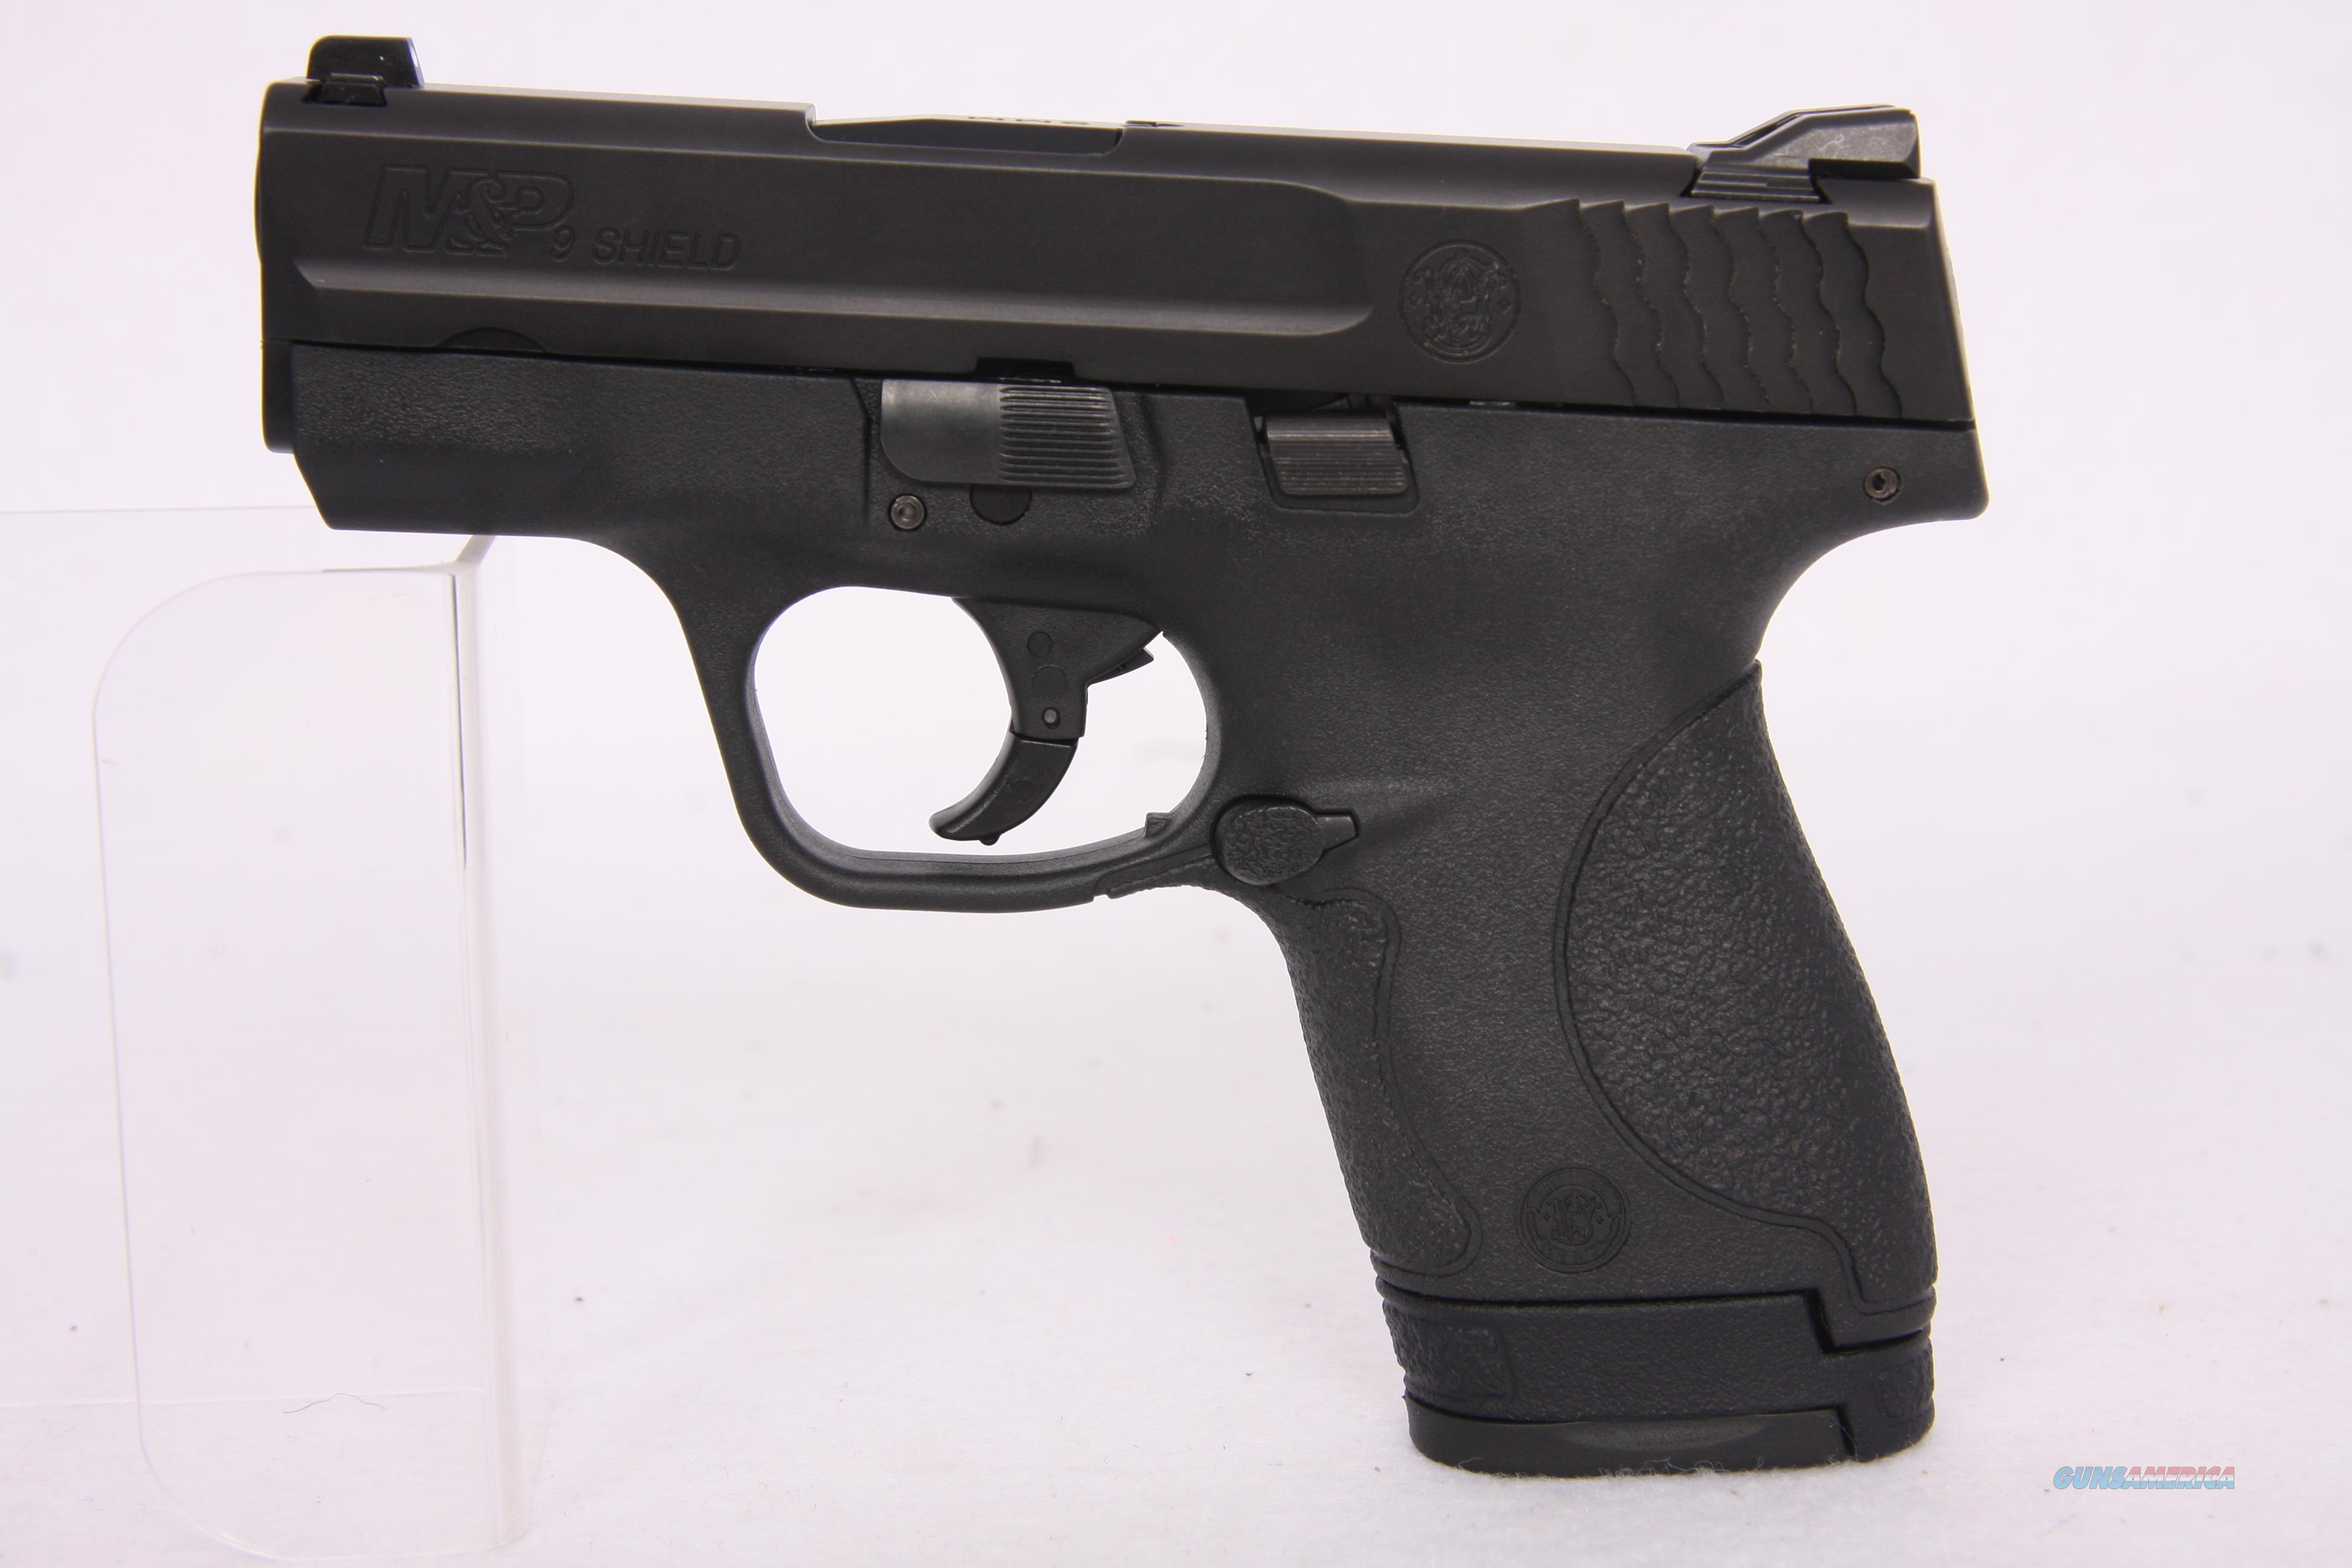 Smith & Wesson Shield 9mm 3.1 In MCR *No Thumb Safety*  Guns > Pistols > Smith & Wesson Pistols - Autos > Shield